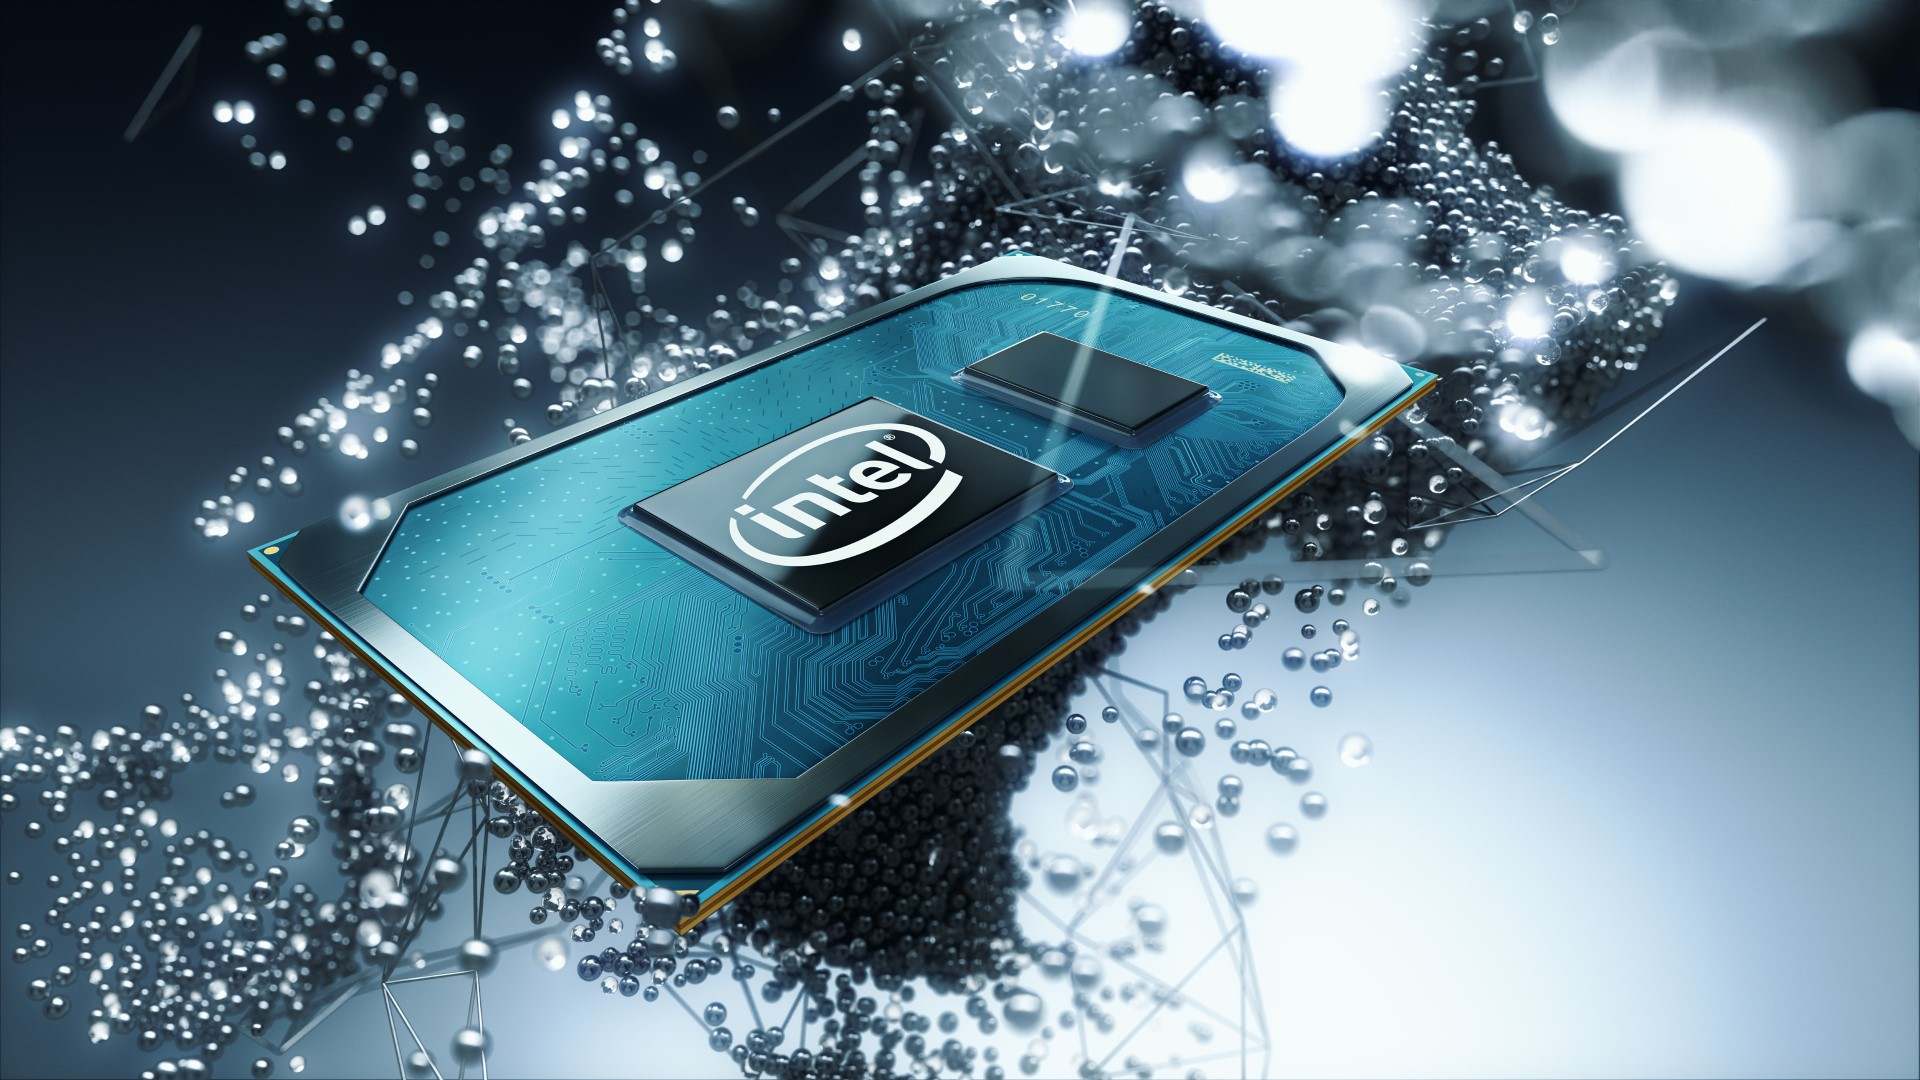 Intel Unveils 11th Gen Tiger Lake CPUs With Next-Gen Xe GPU